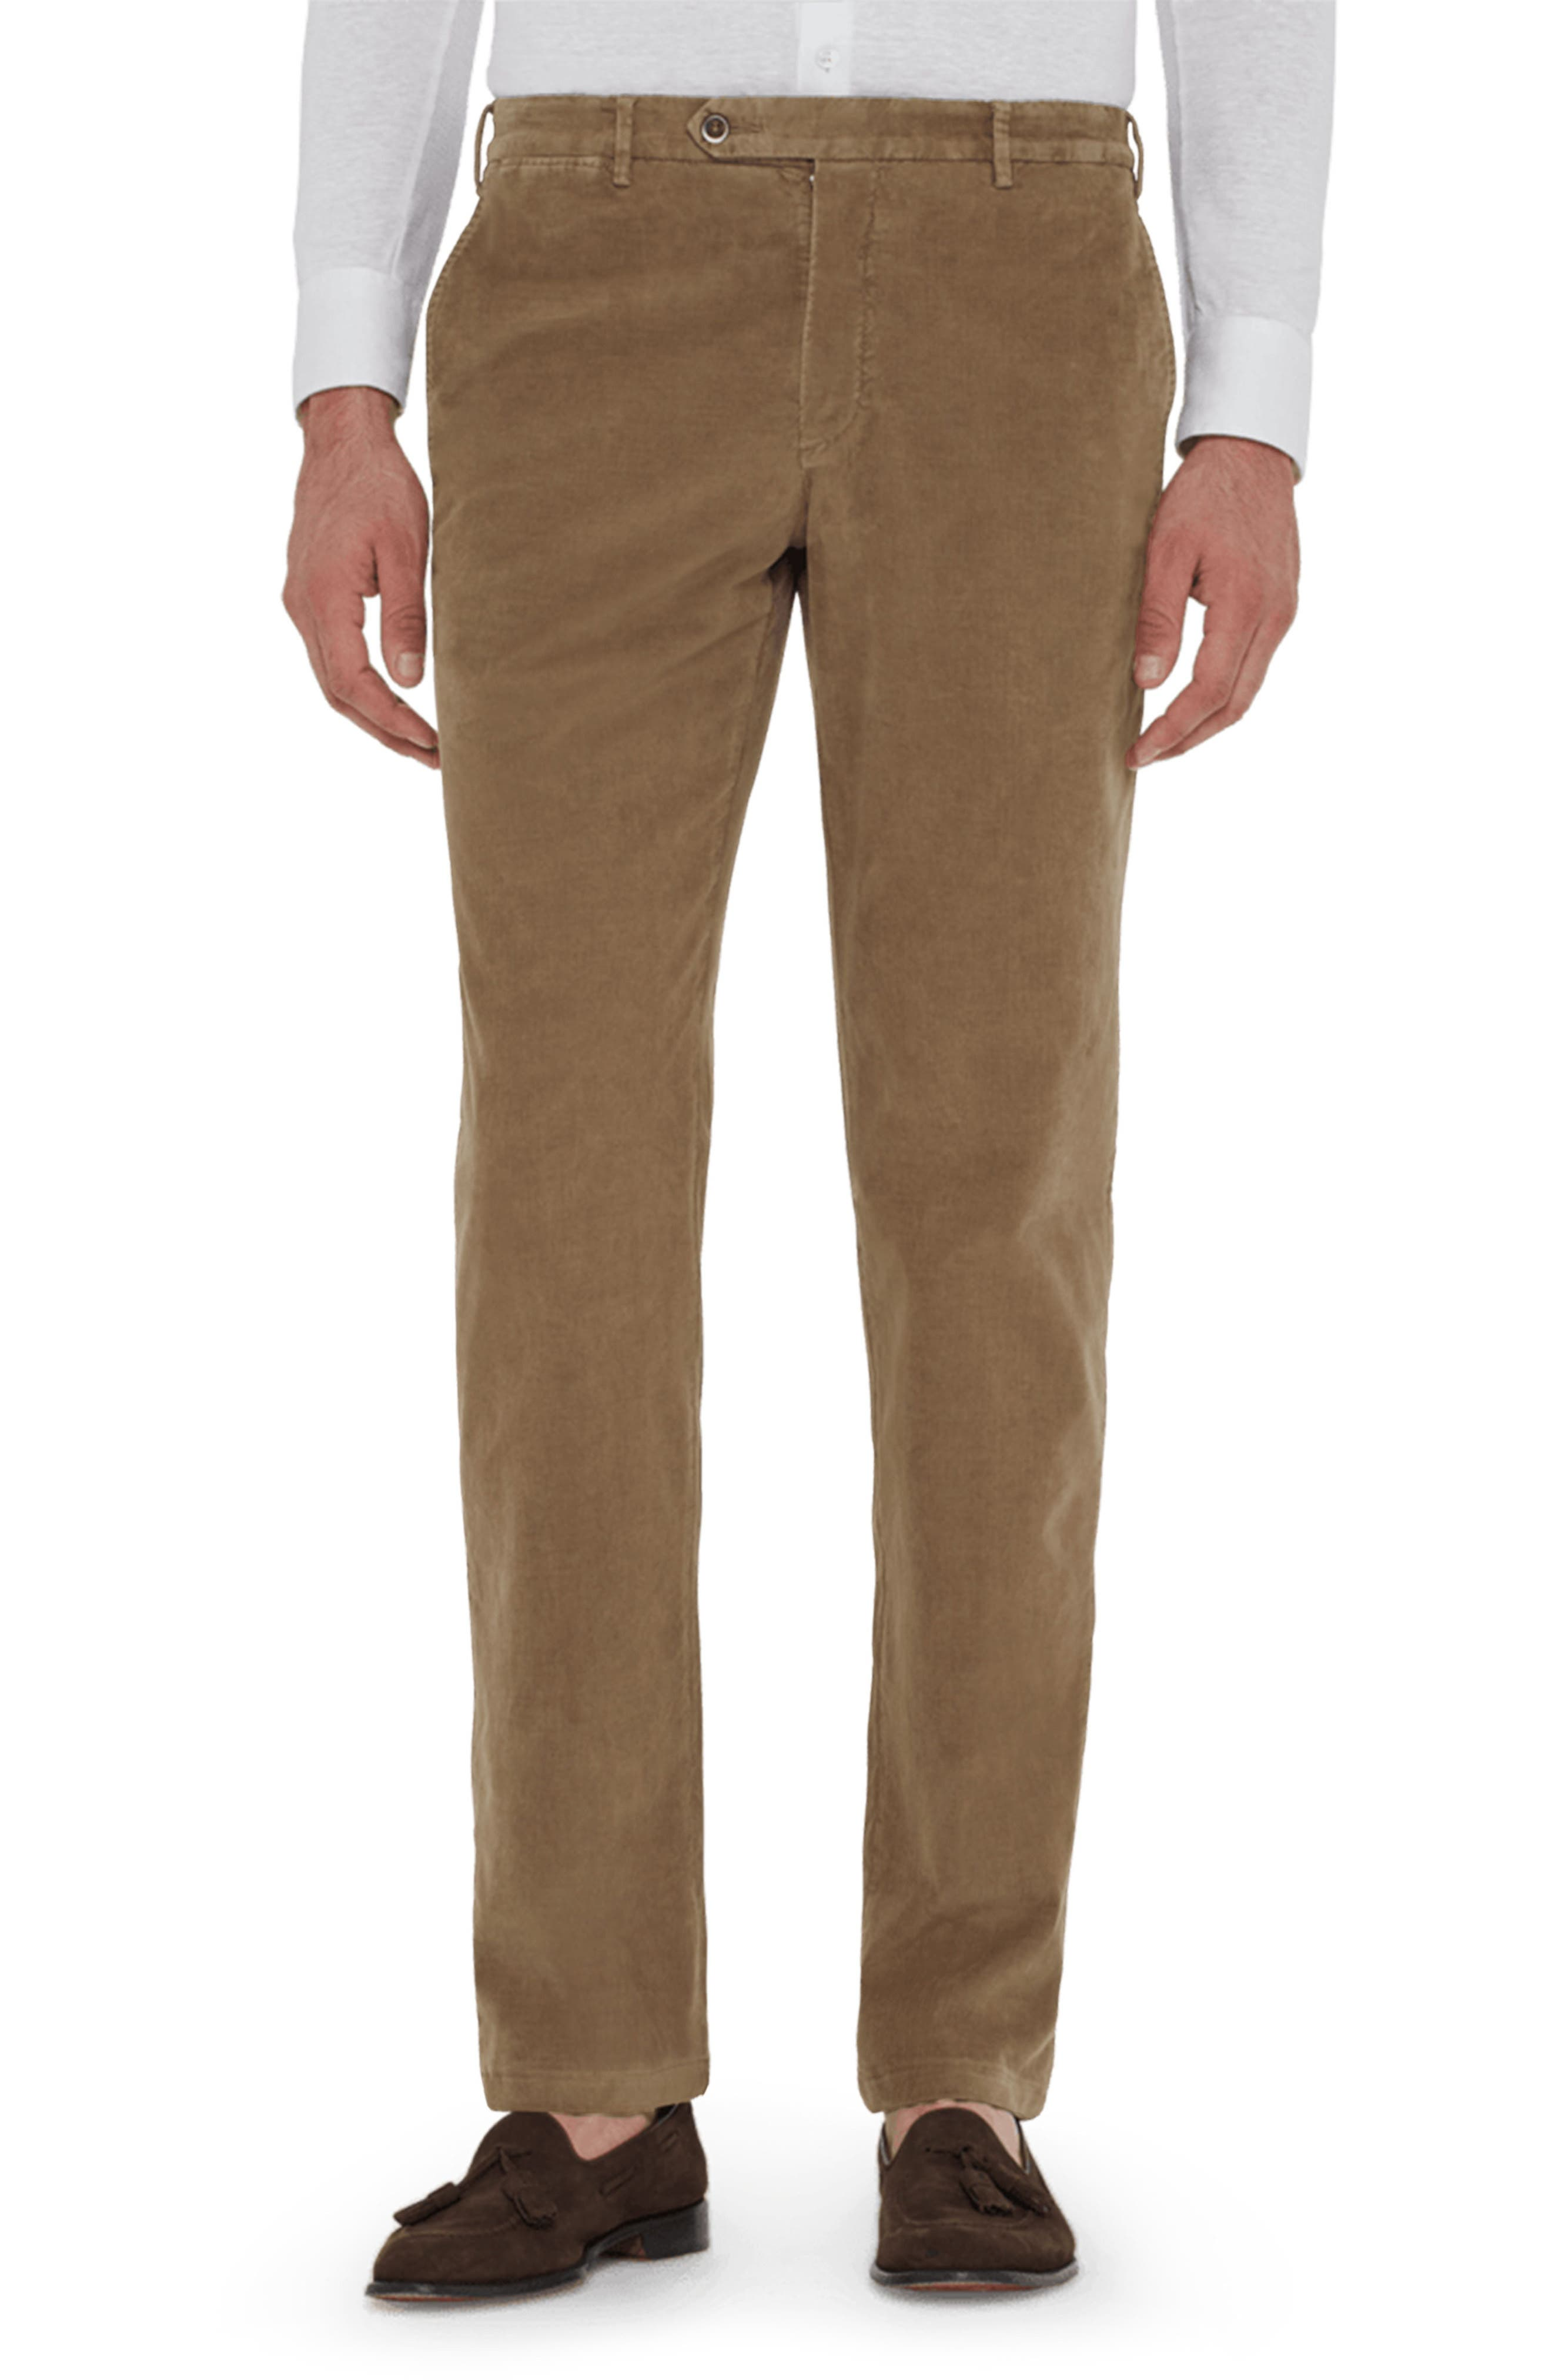 ZANELLA Curtis Flat Front Stretch Corduroy Cotton Trousers in Tan